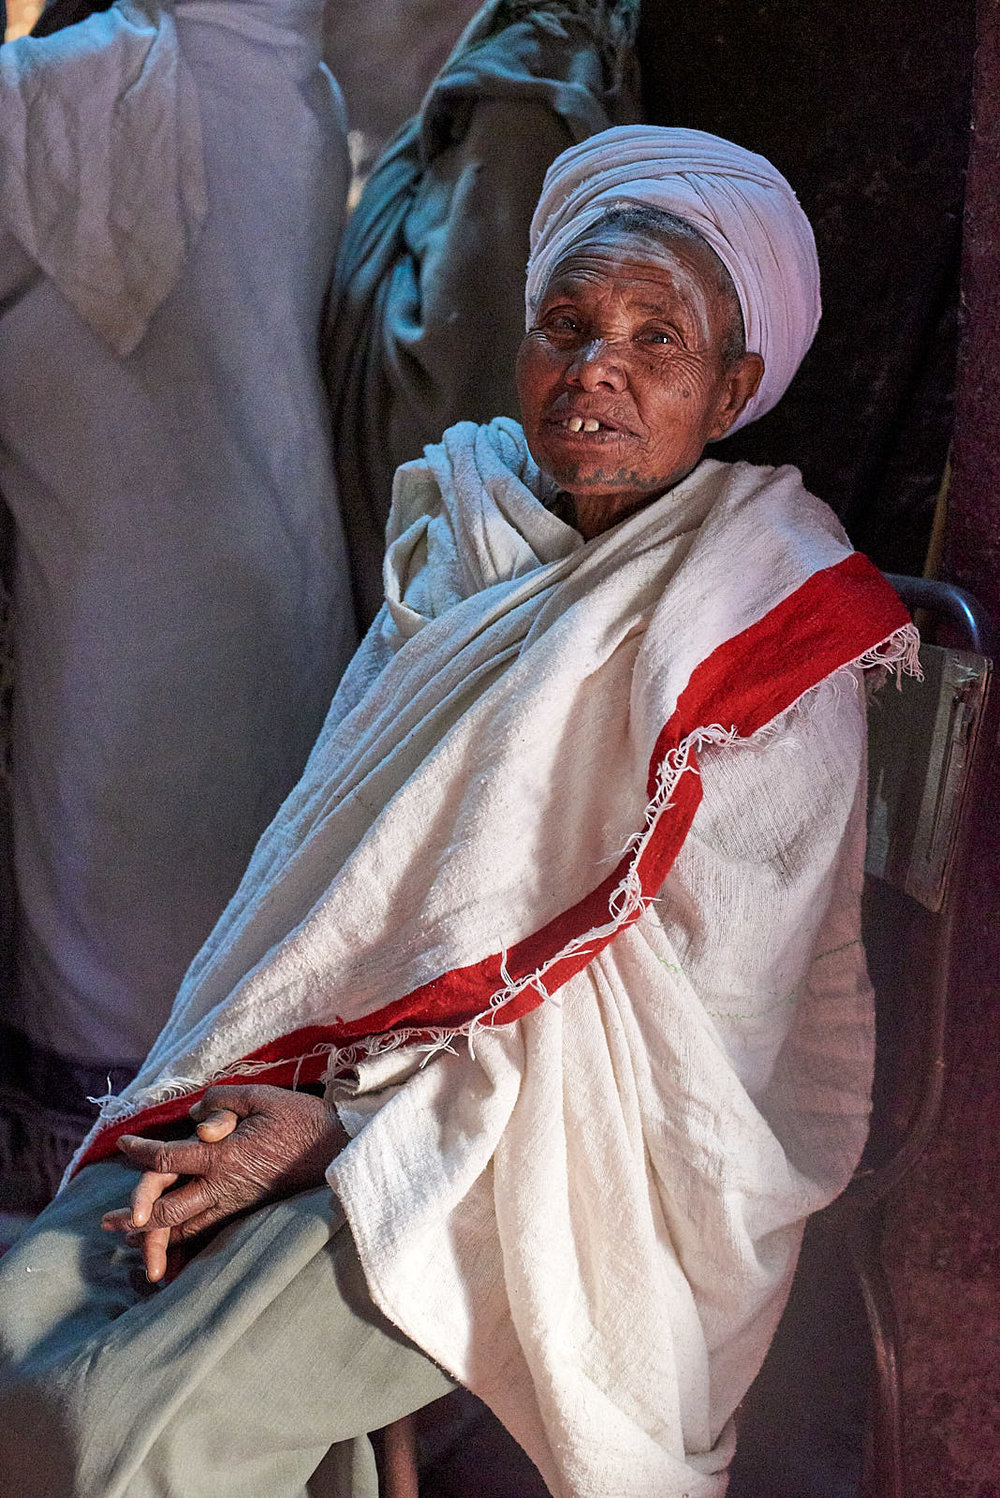 Ethiopian Orthodox pilgrim rests after prayers inside the Church of Saint George, Lalibela, Ethiopia.